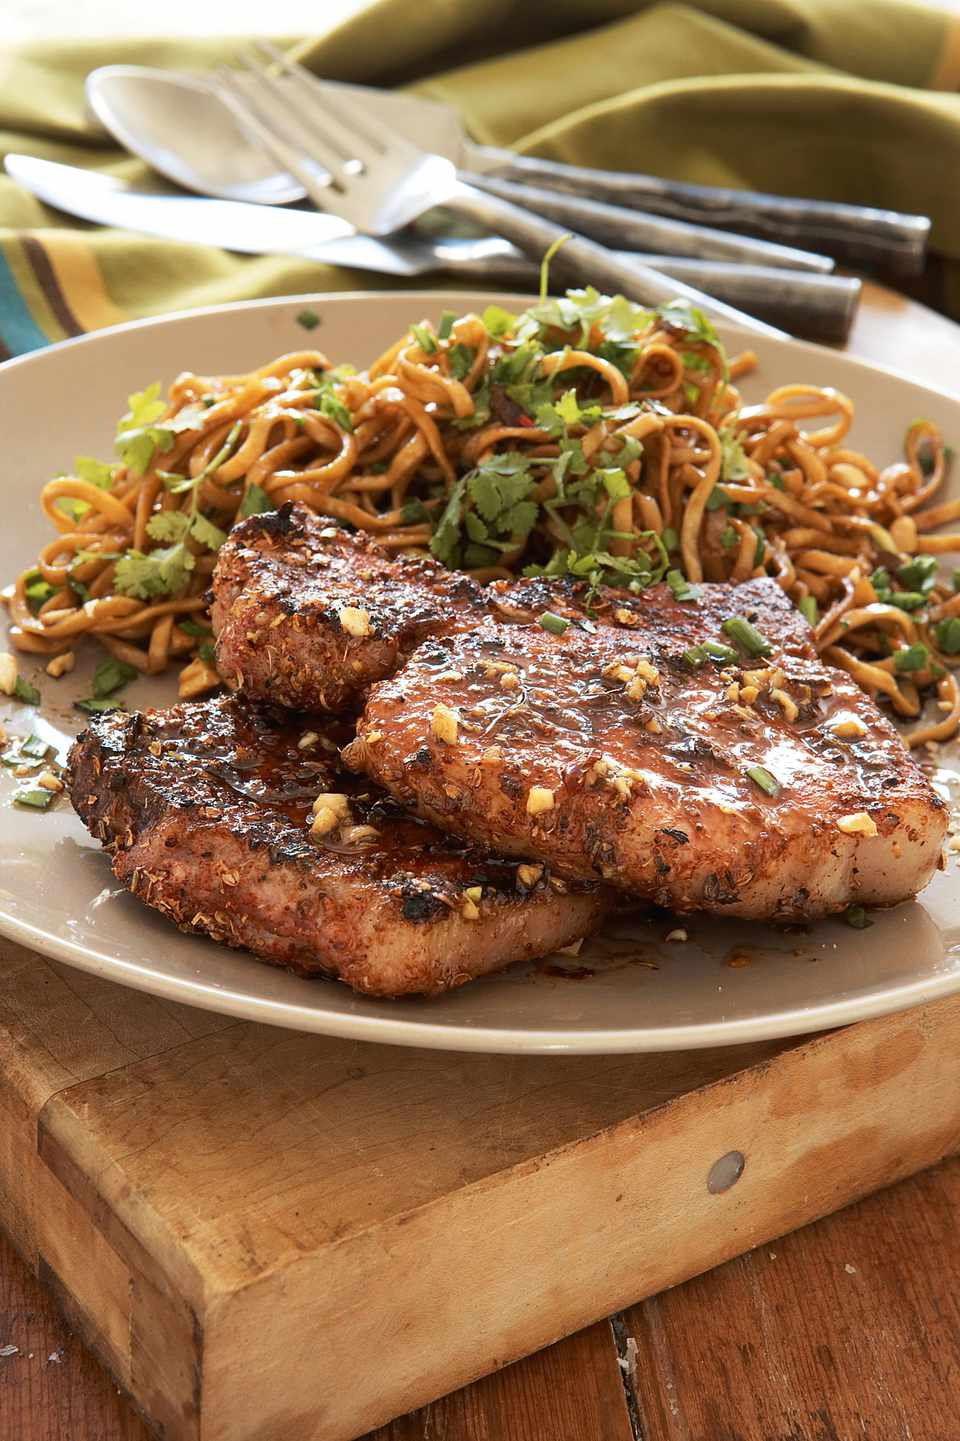 Grilled Pork Chops with Indian Spice Rub